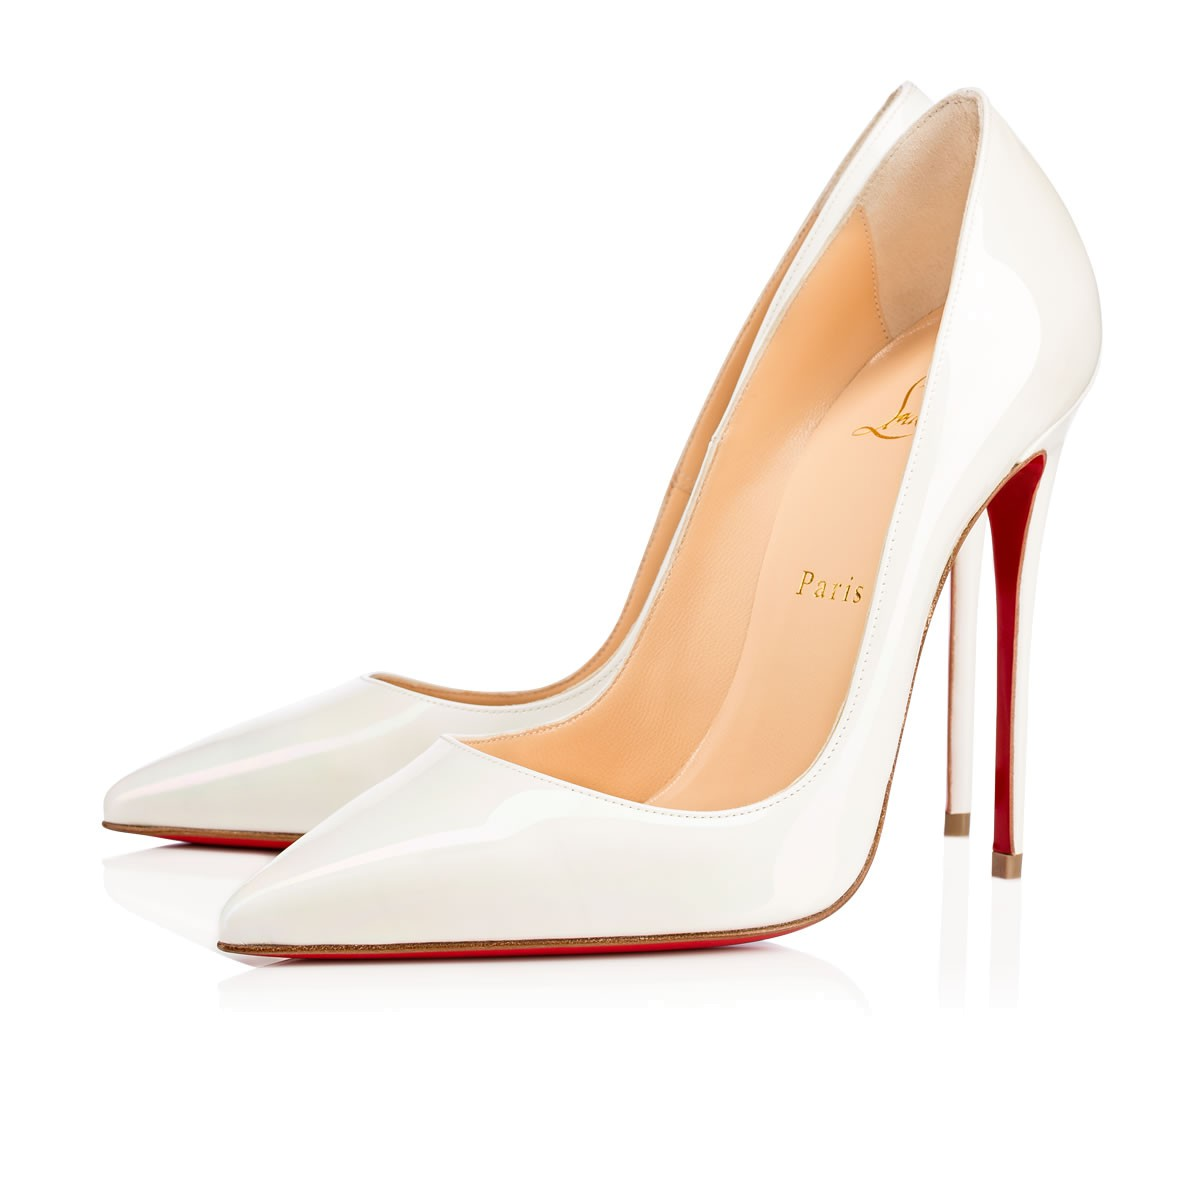 ba65771dc814 Christian Louboutin So Kate 120 Patent-Leather Pumps In White